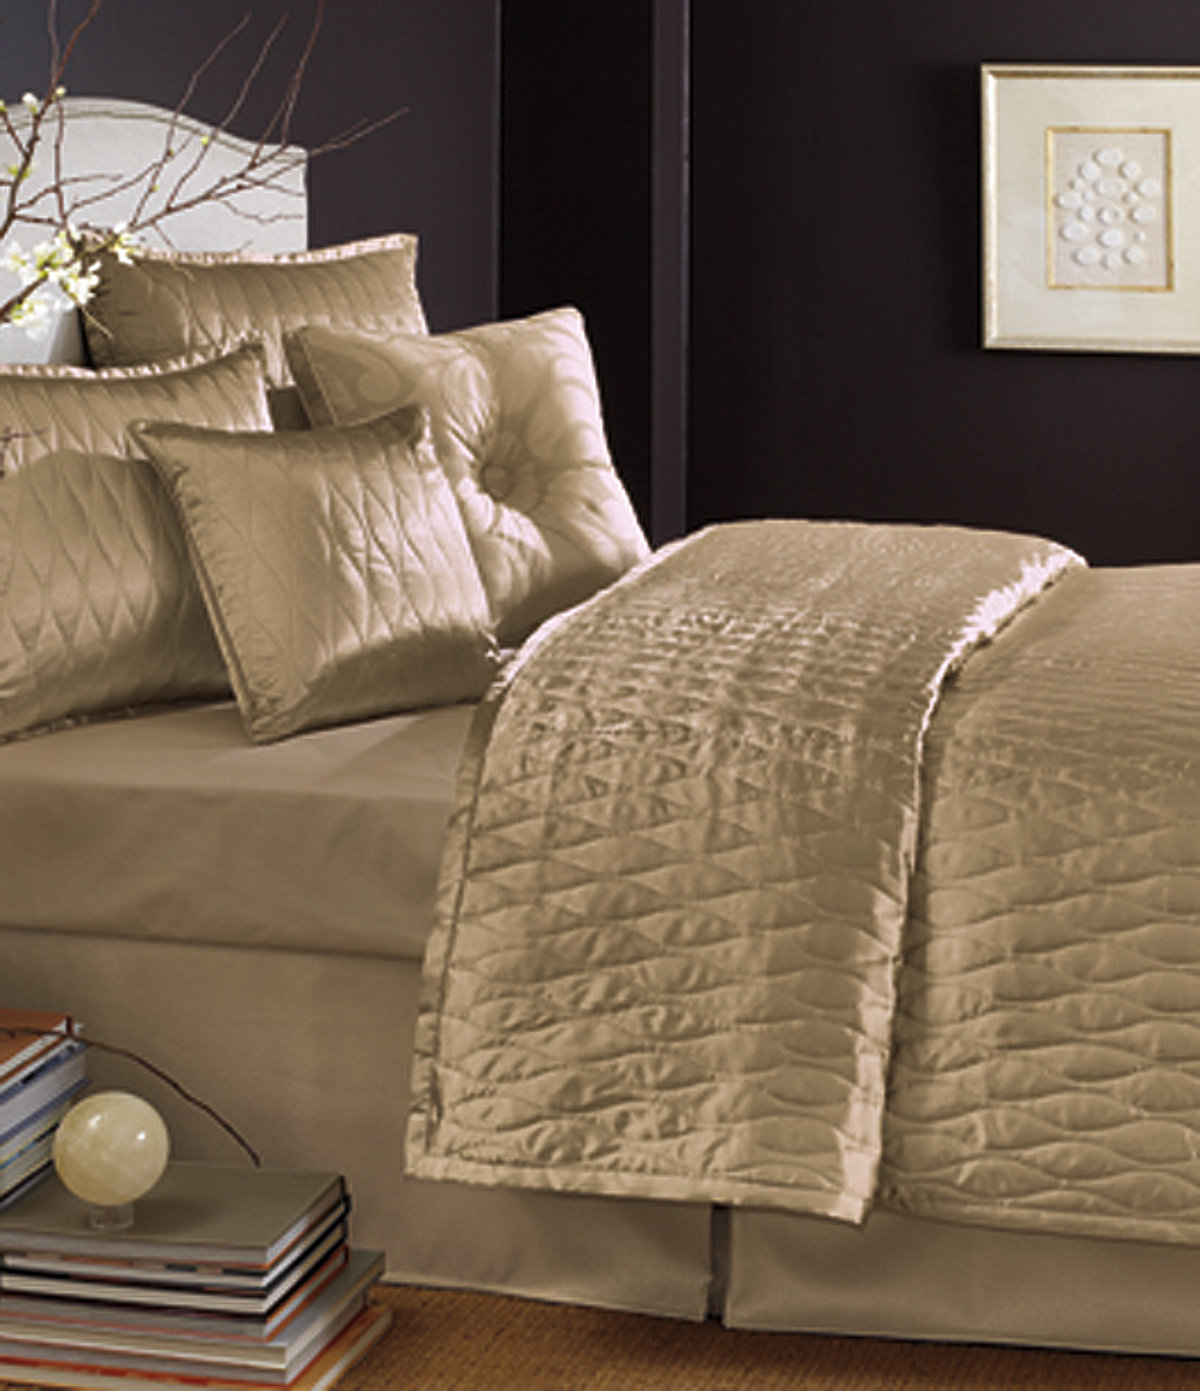 Candice Olson Blue Living Rooms: Modern Furniture: 2013 Candice Olson Bedding Collection